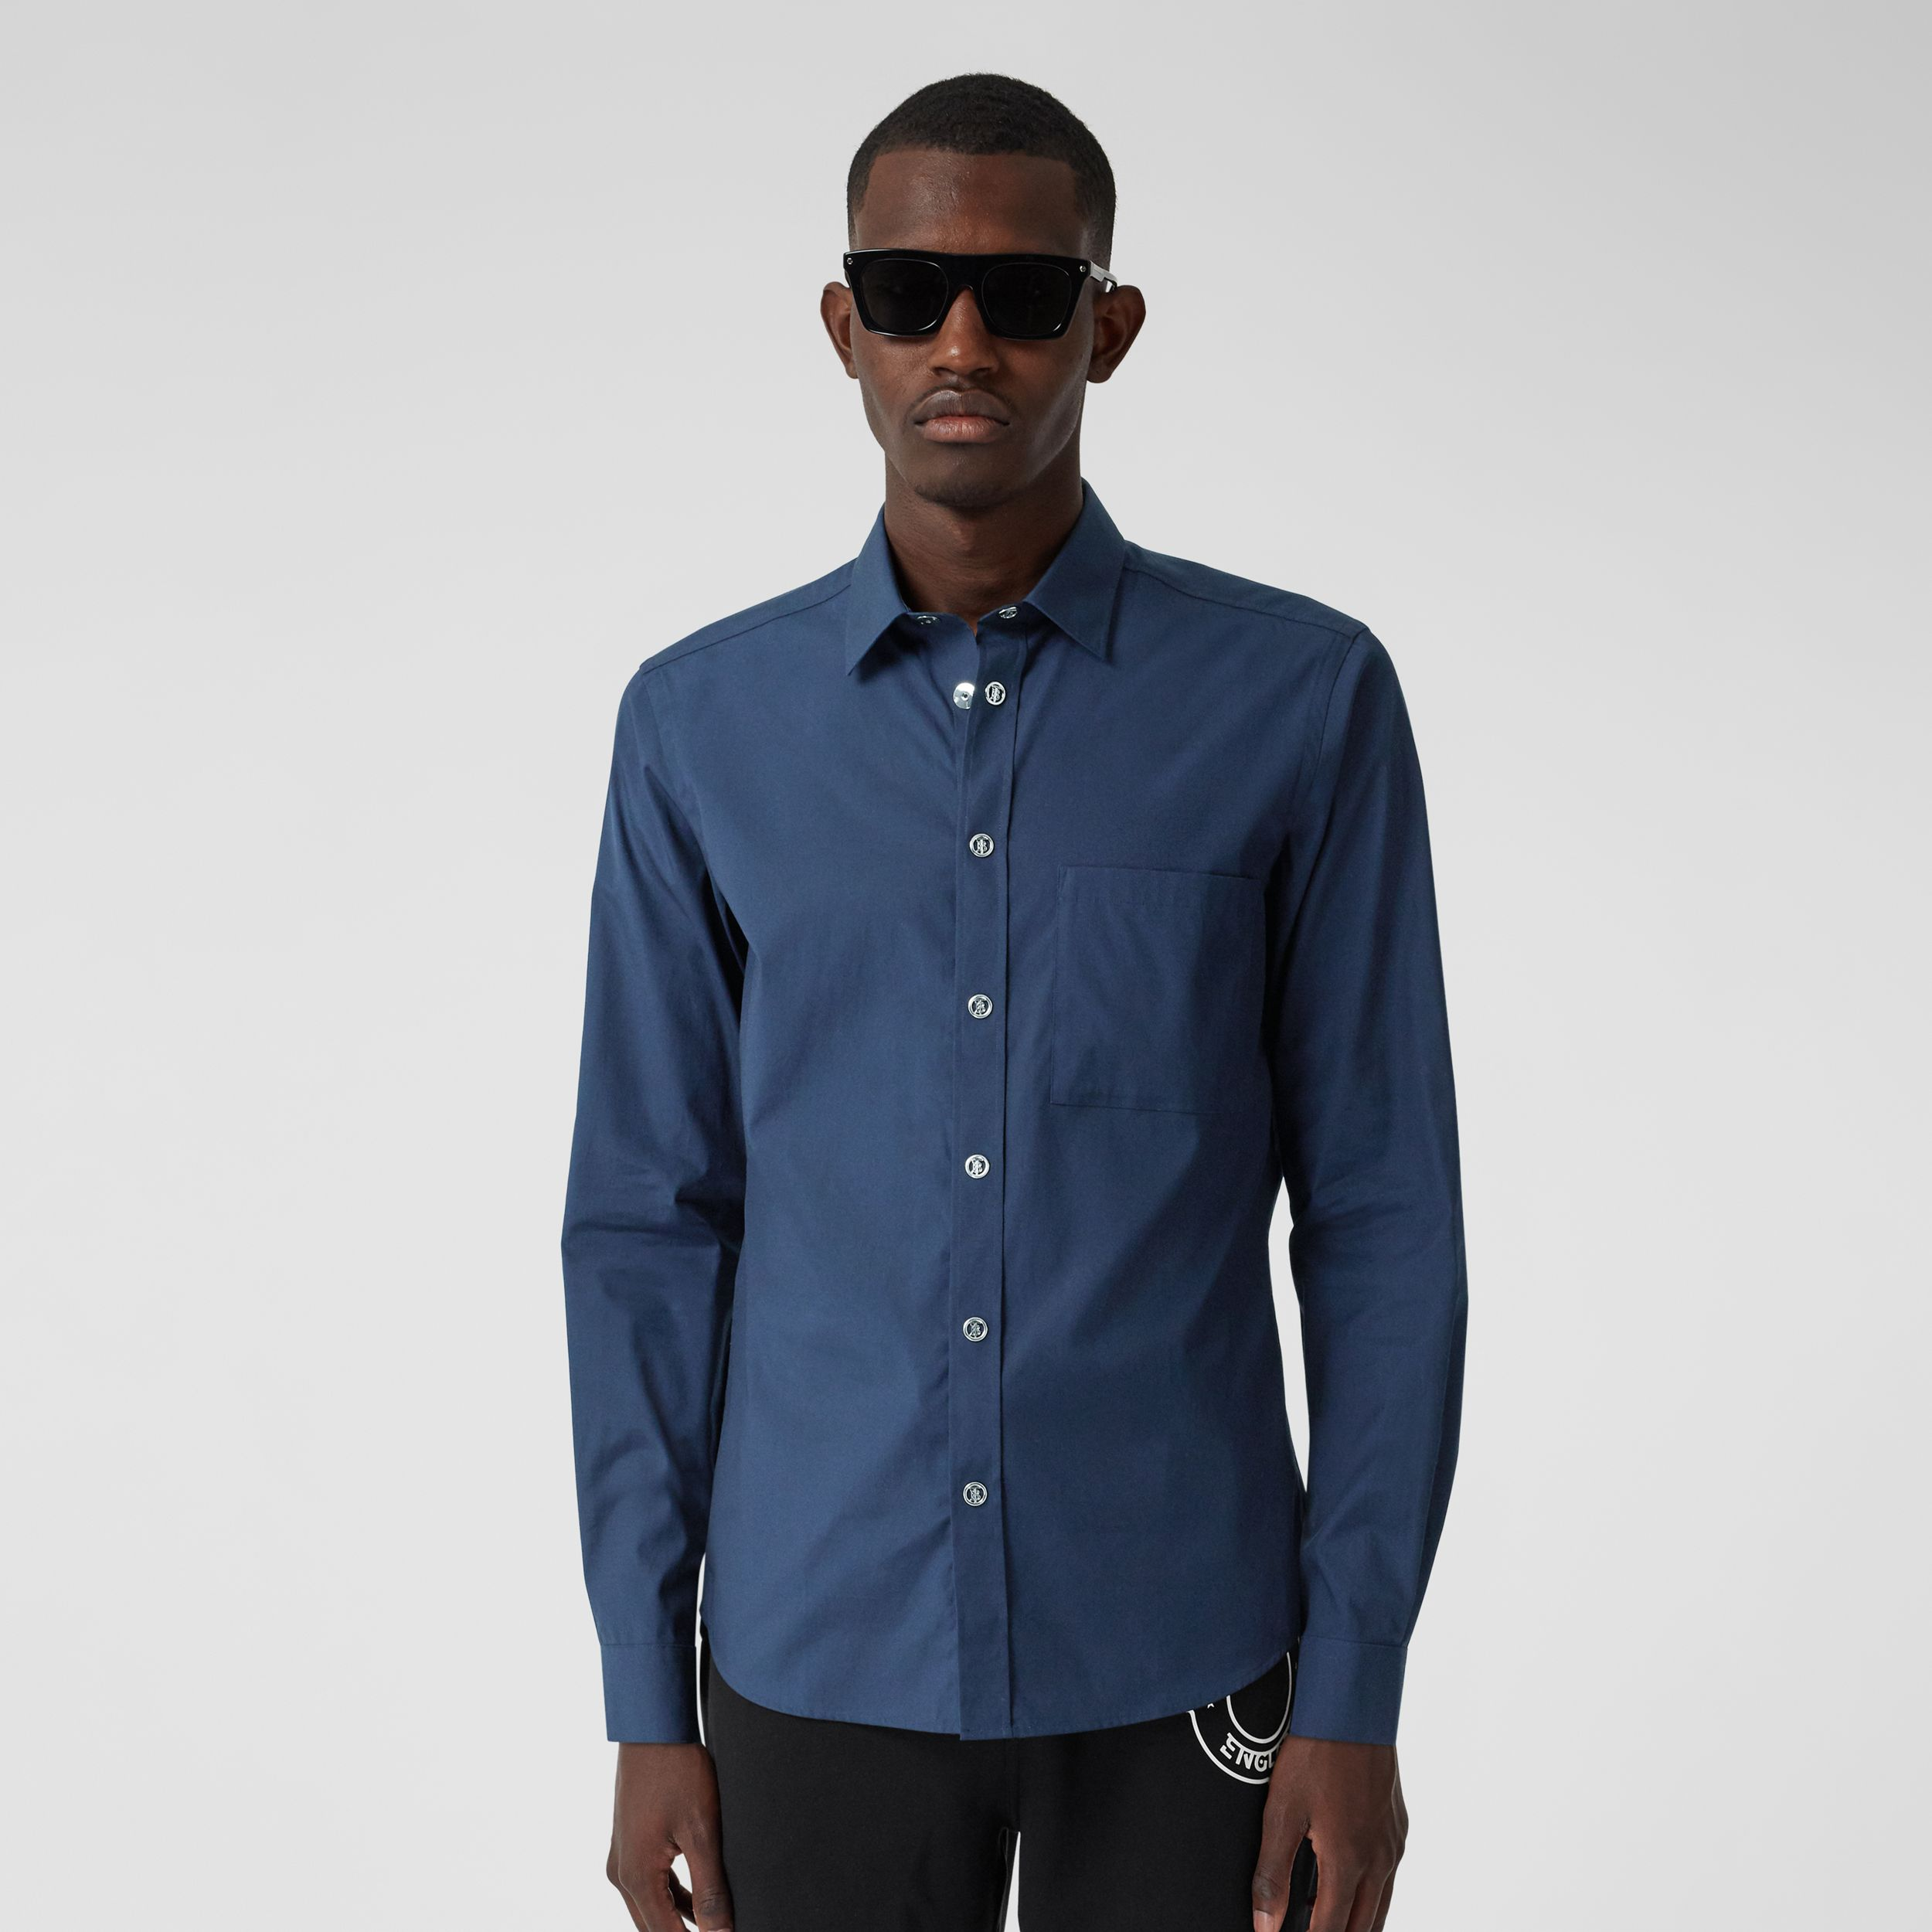 Monogram Motif Stretch Cotton Shirt in Navy - Men | Burberry - 1